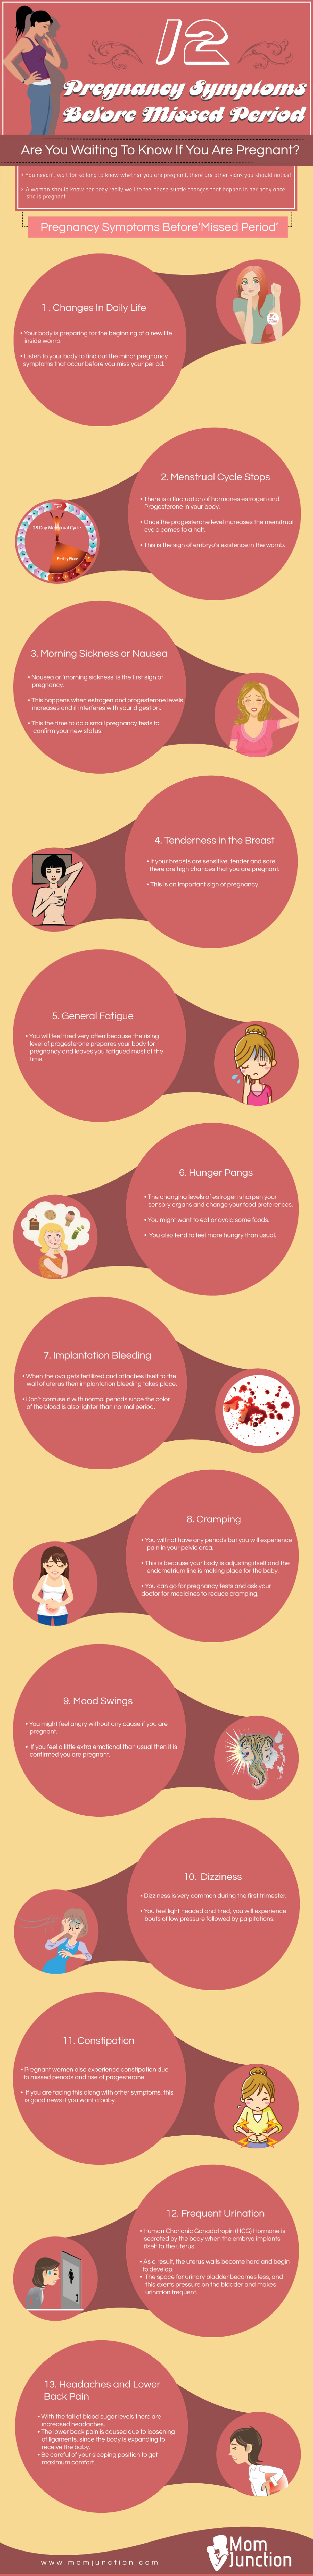 12 Pregnancy Symptoms Before Missed Period Infographic